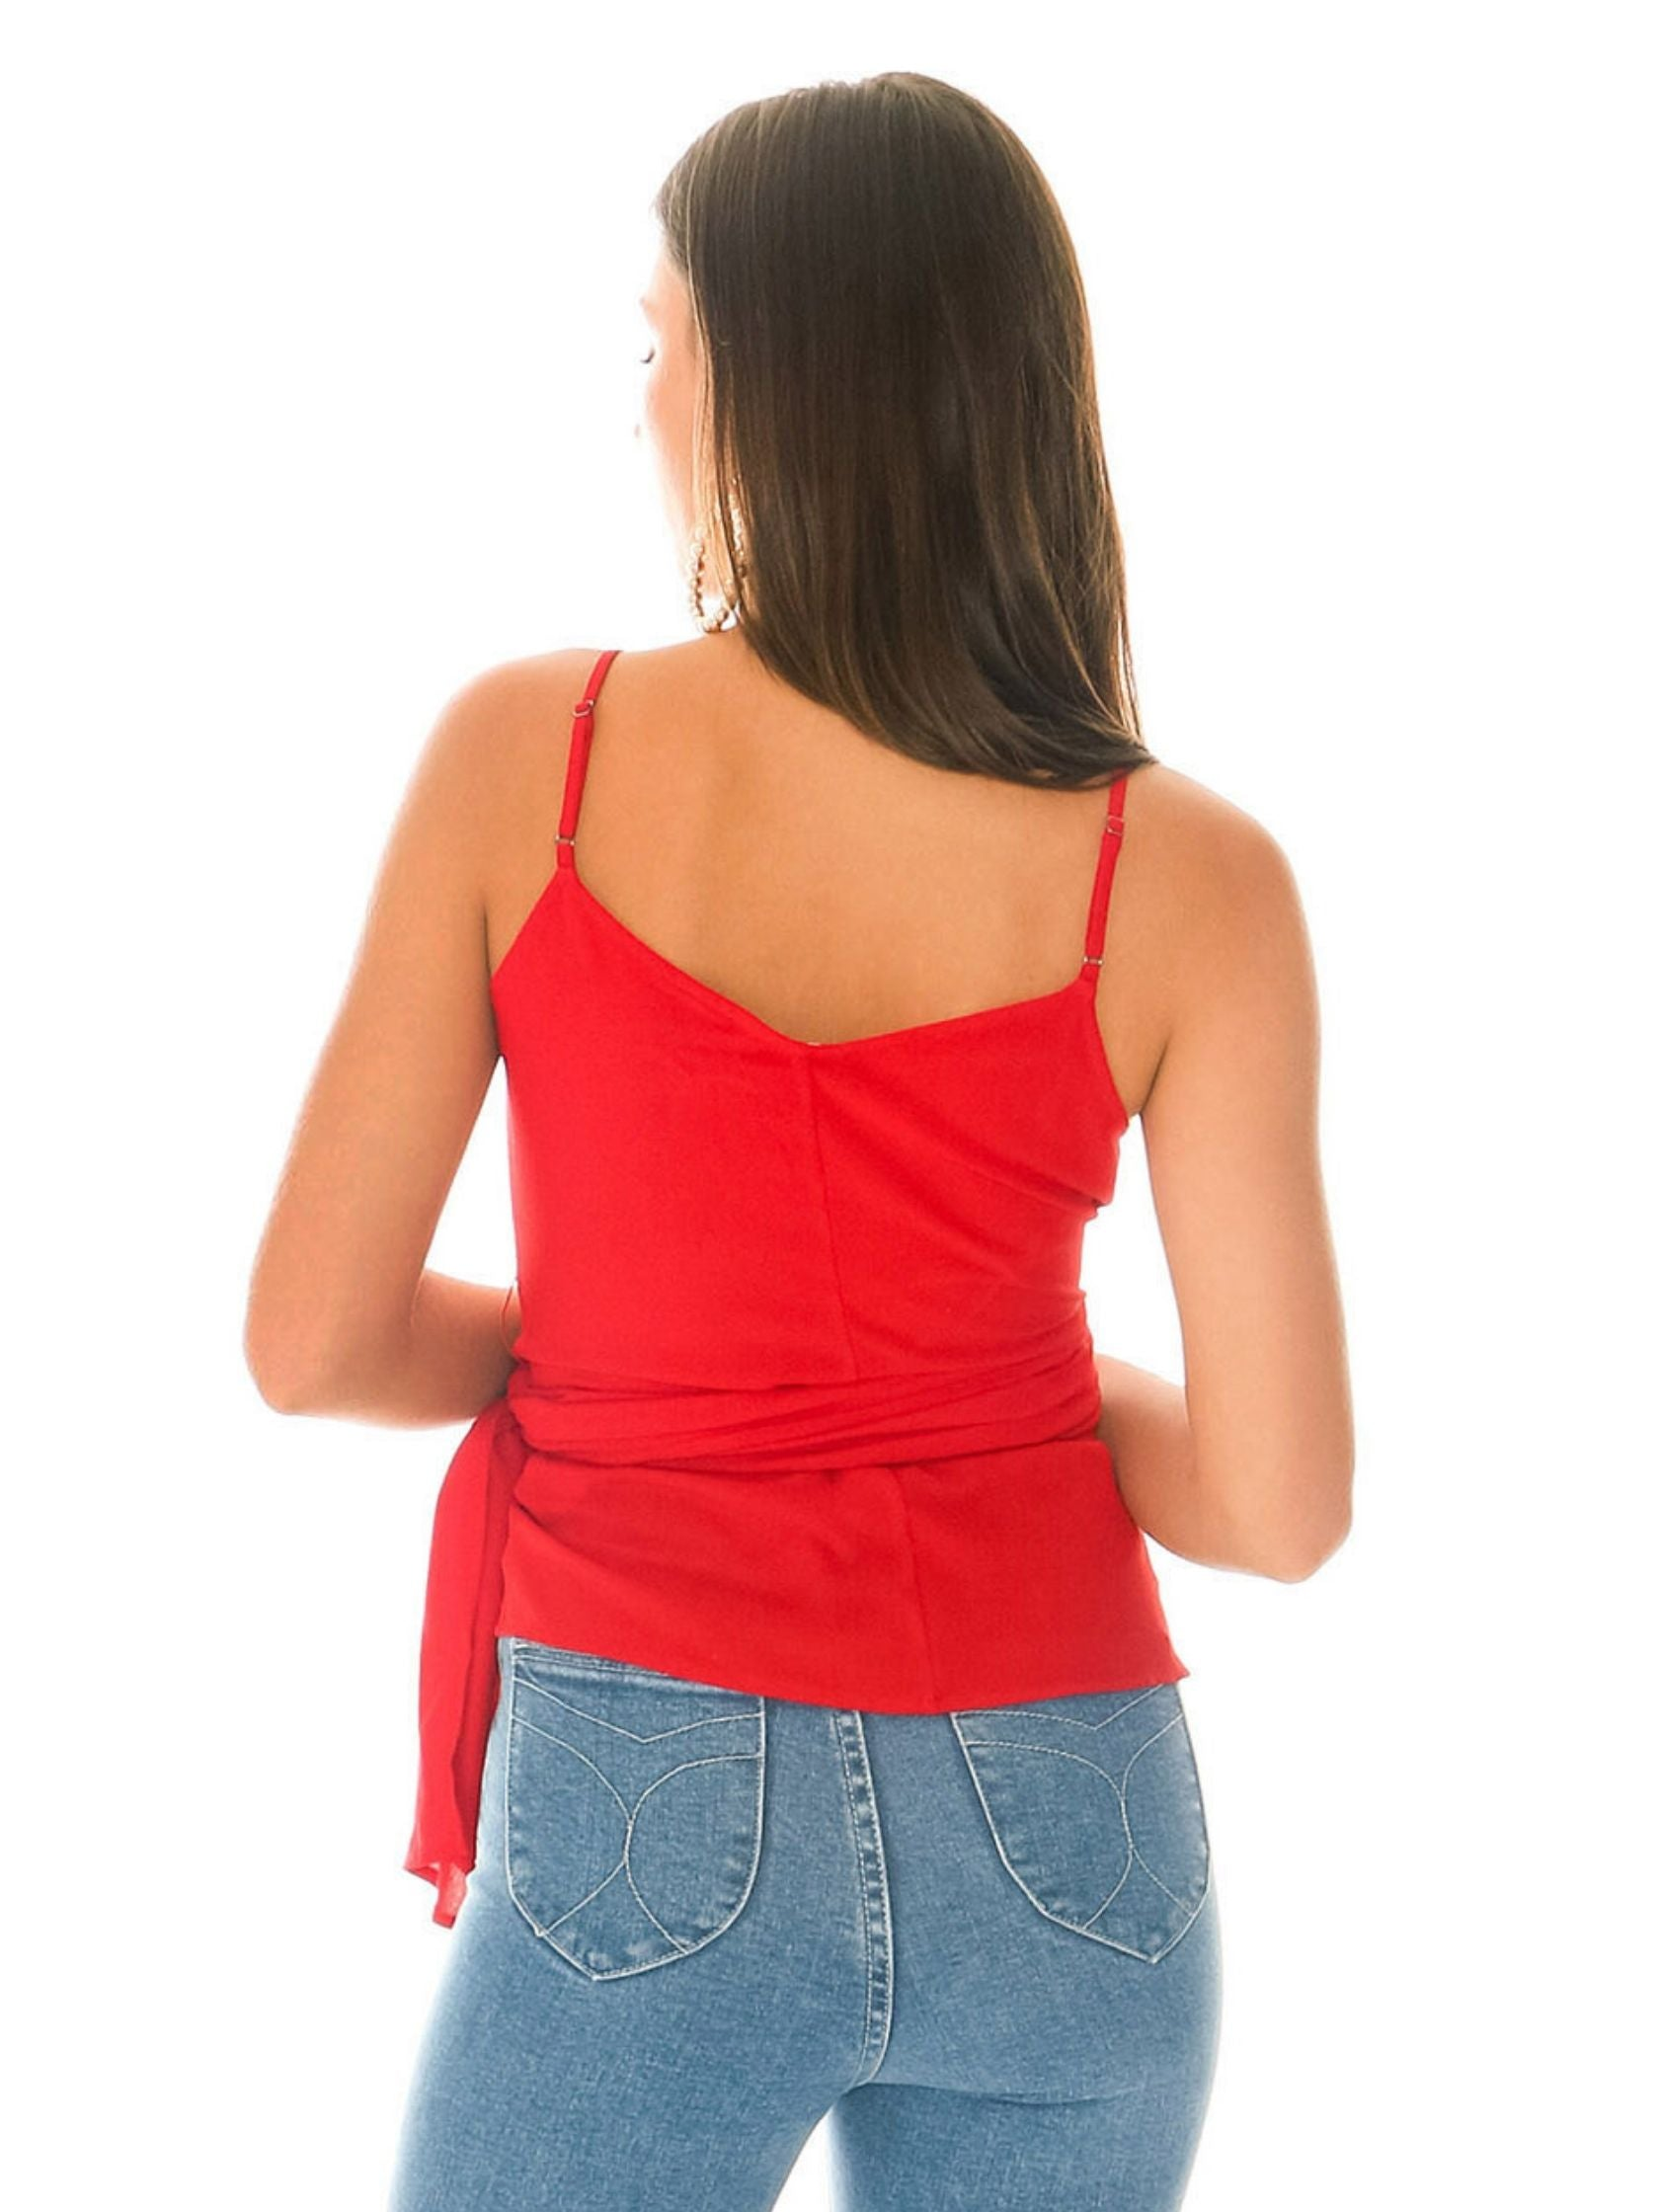 Women outfit in a cami rental from 1.STATE called Wrap Front Cami